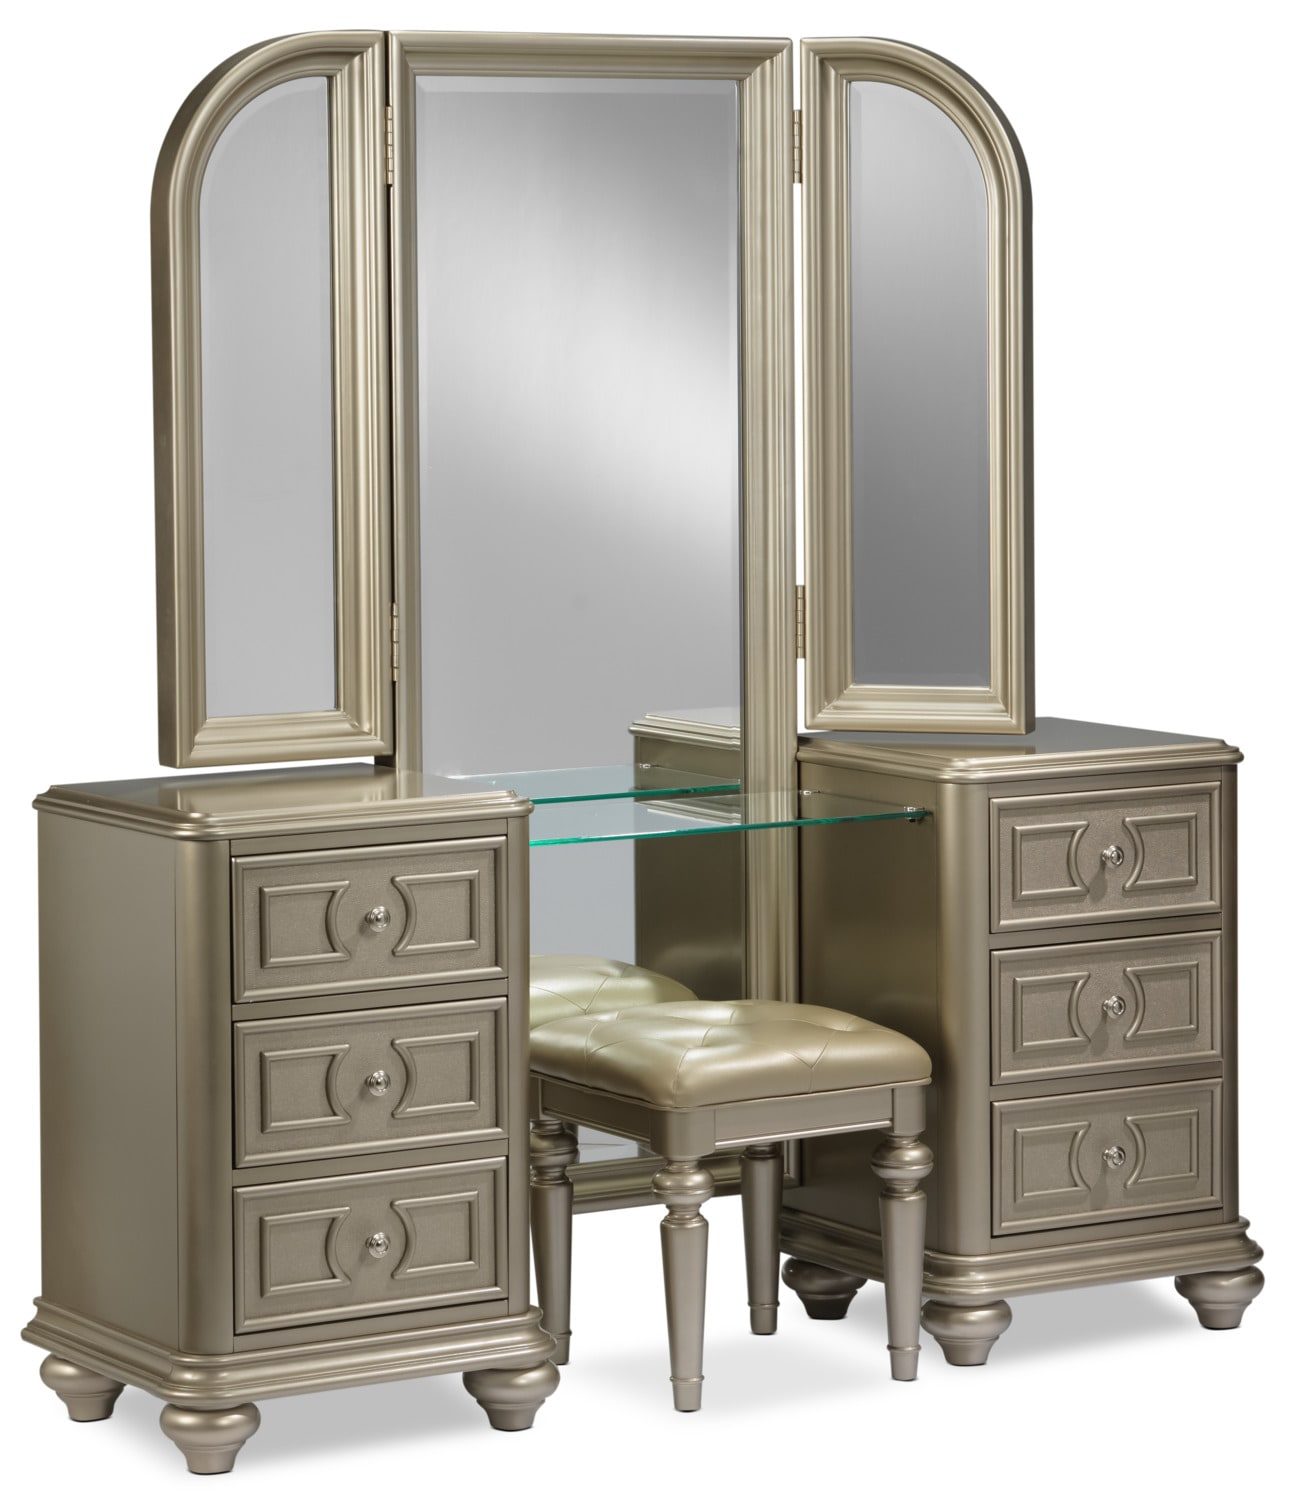 Bedroom Furniture - Dynasty 2-Piece Vanity Set - Gold